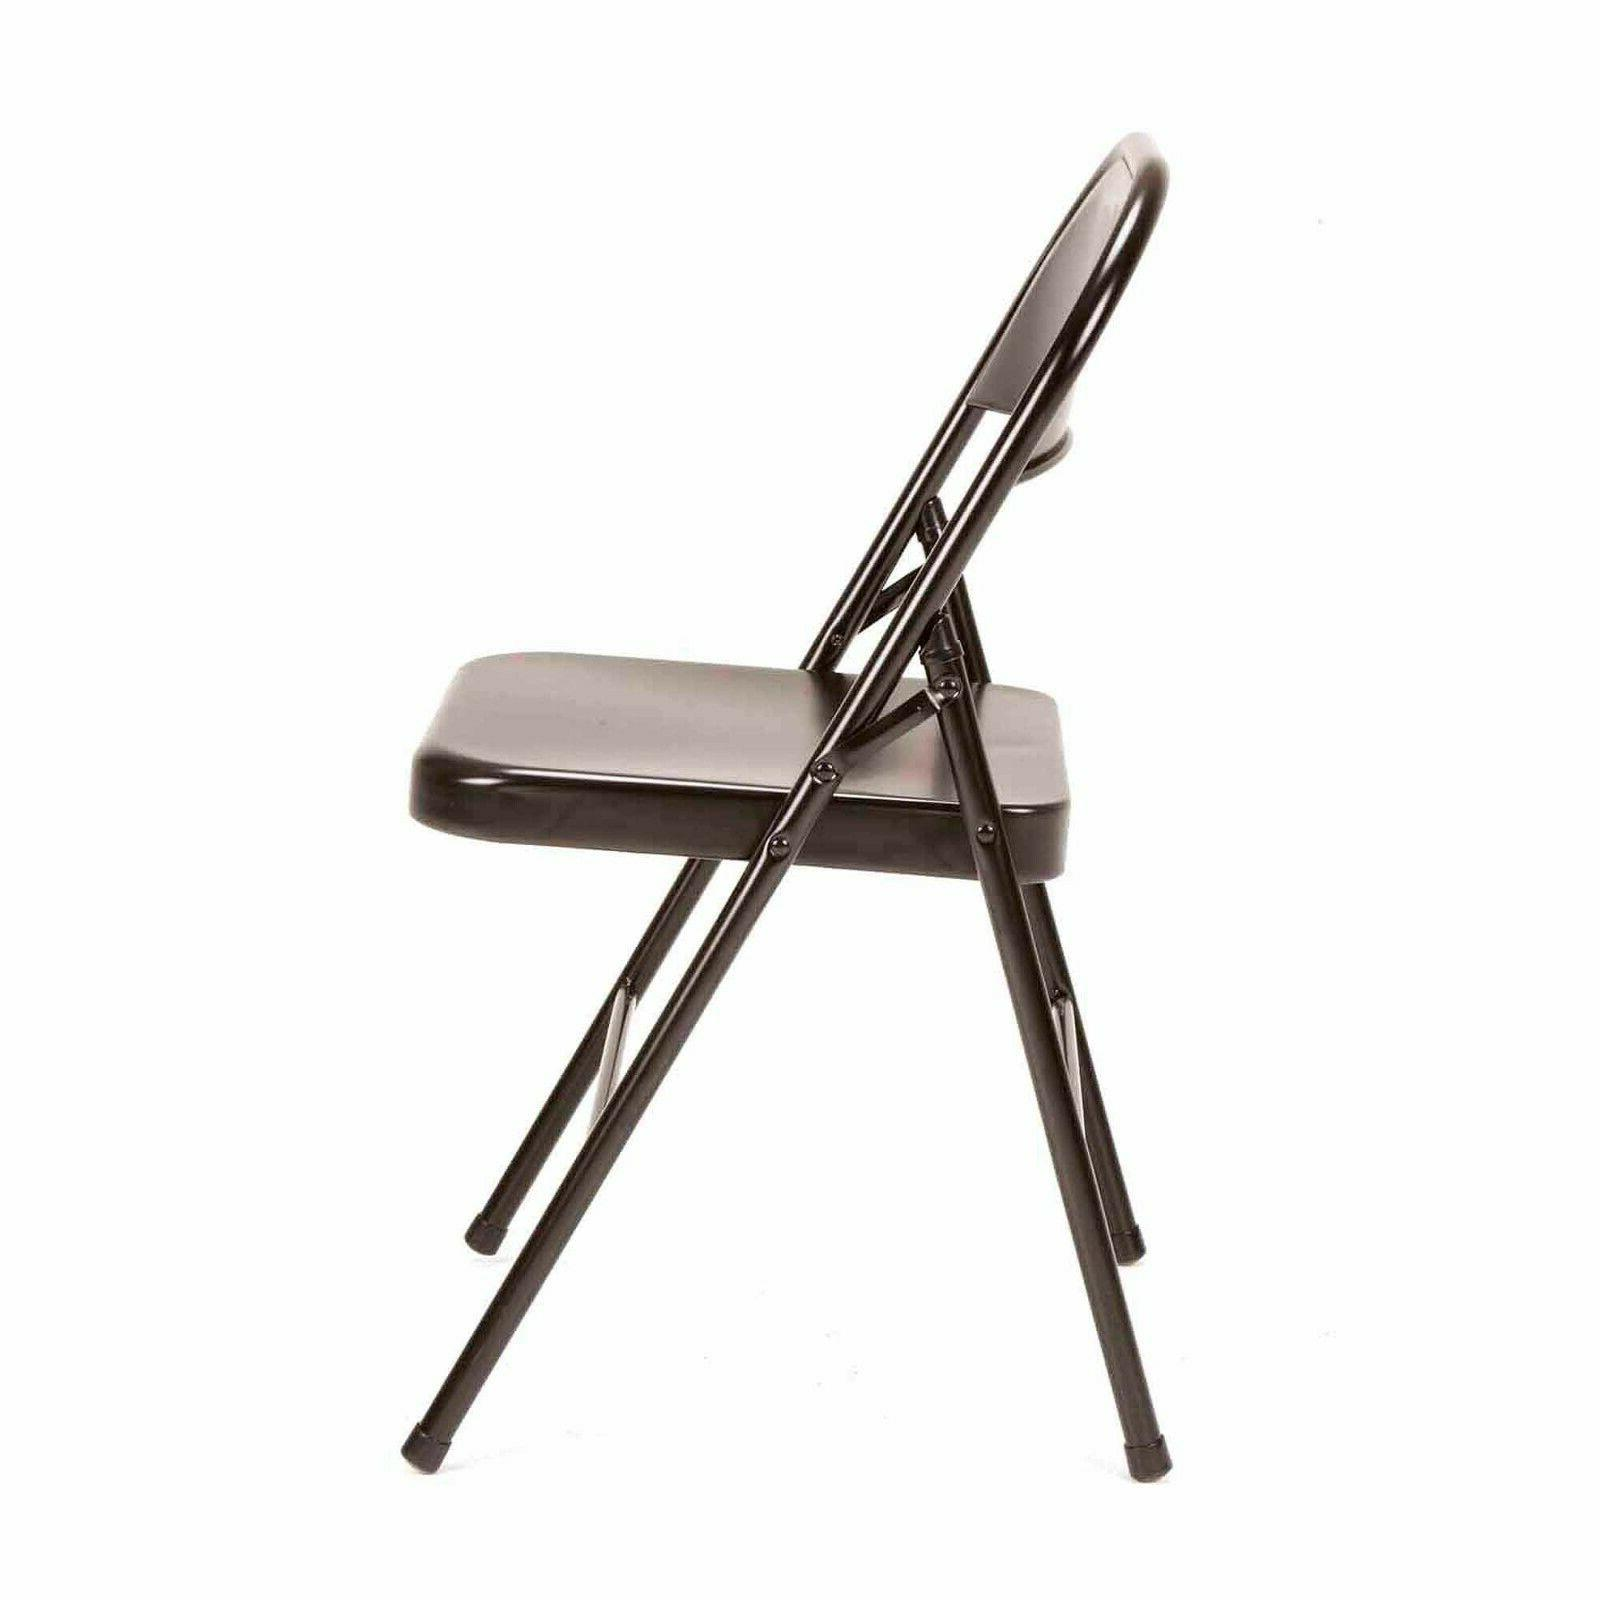 4-PACK Traditional Steel Folding Chair with Rubber-Cap Prote